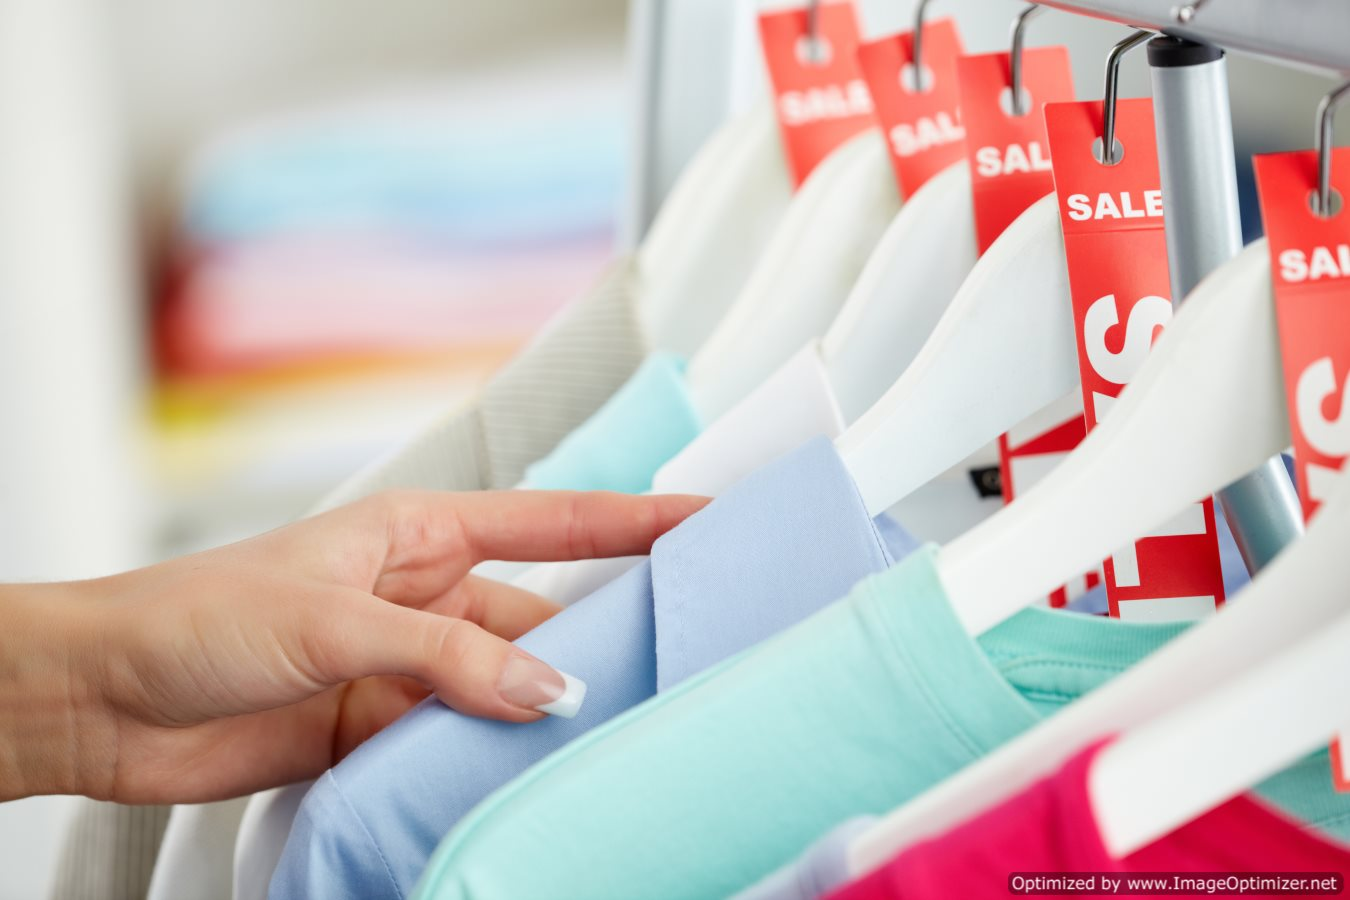 Axed: J.C. Penney CEO Shown the Door